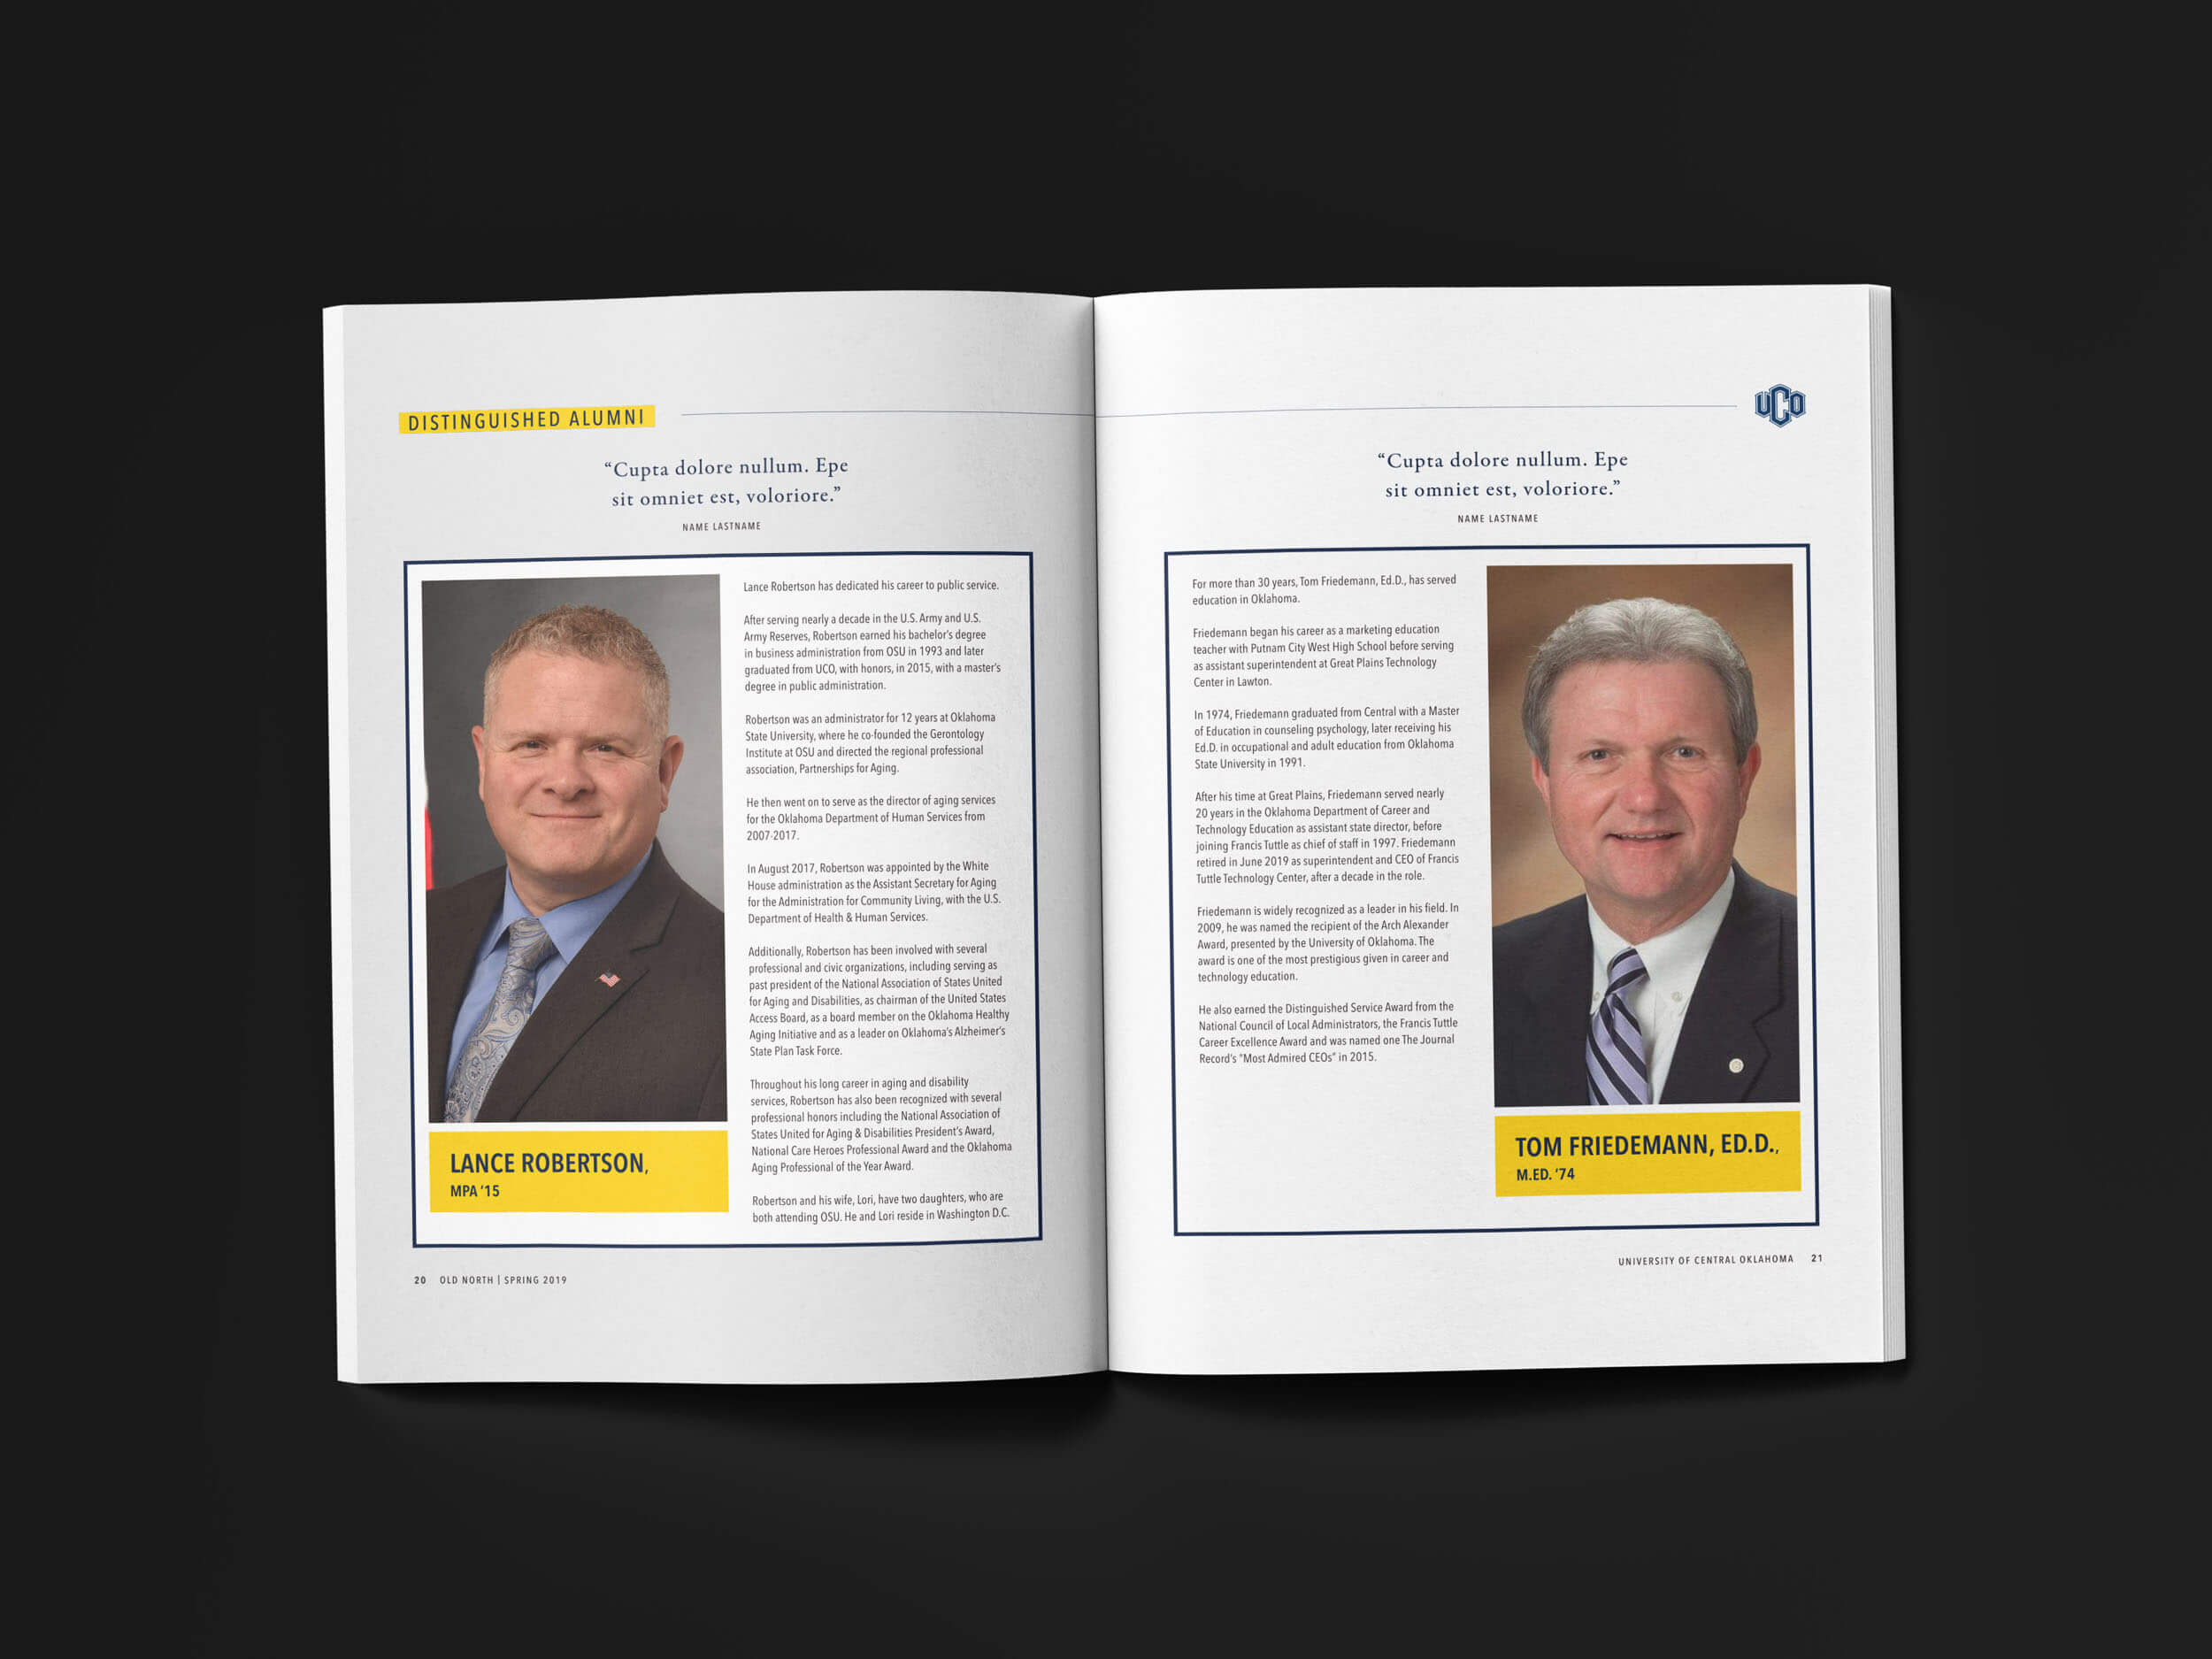 A spread of distinguished Alumni for the UCO Old North Magazine Style Guides by Ghost